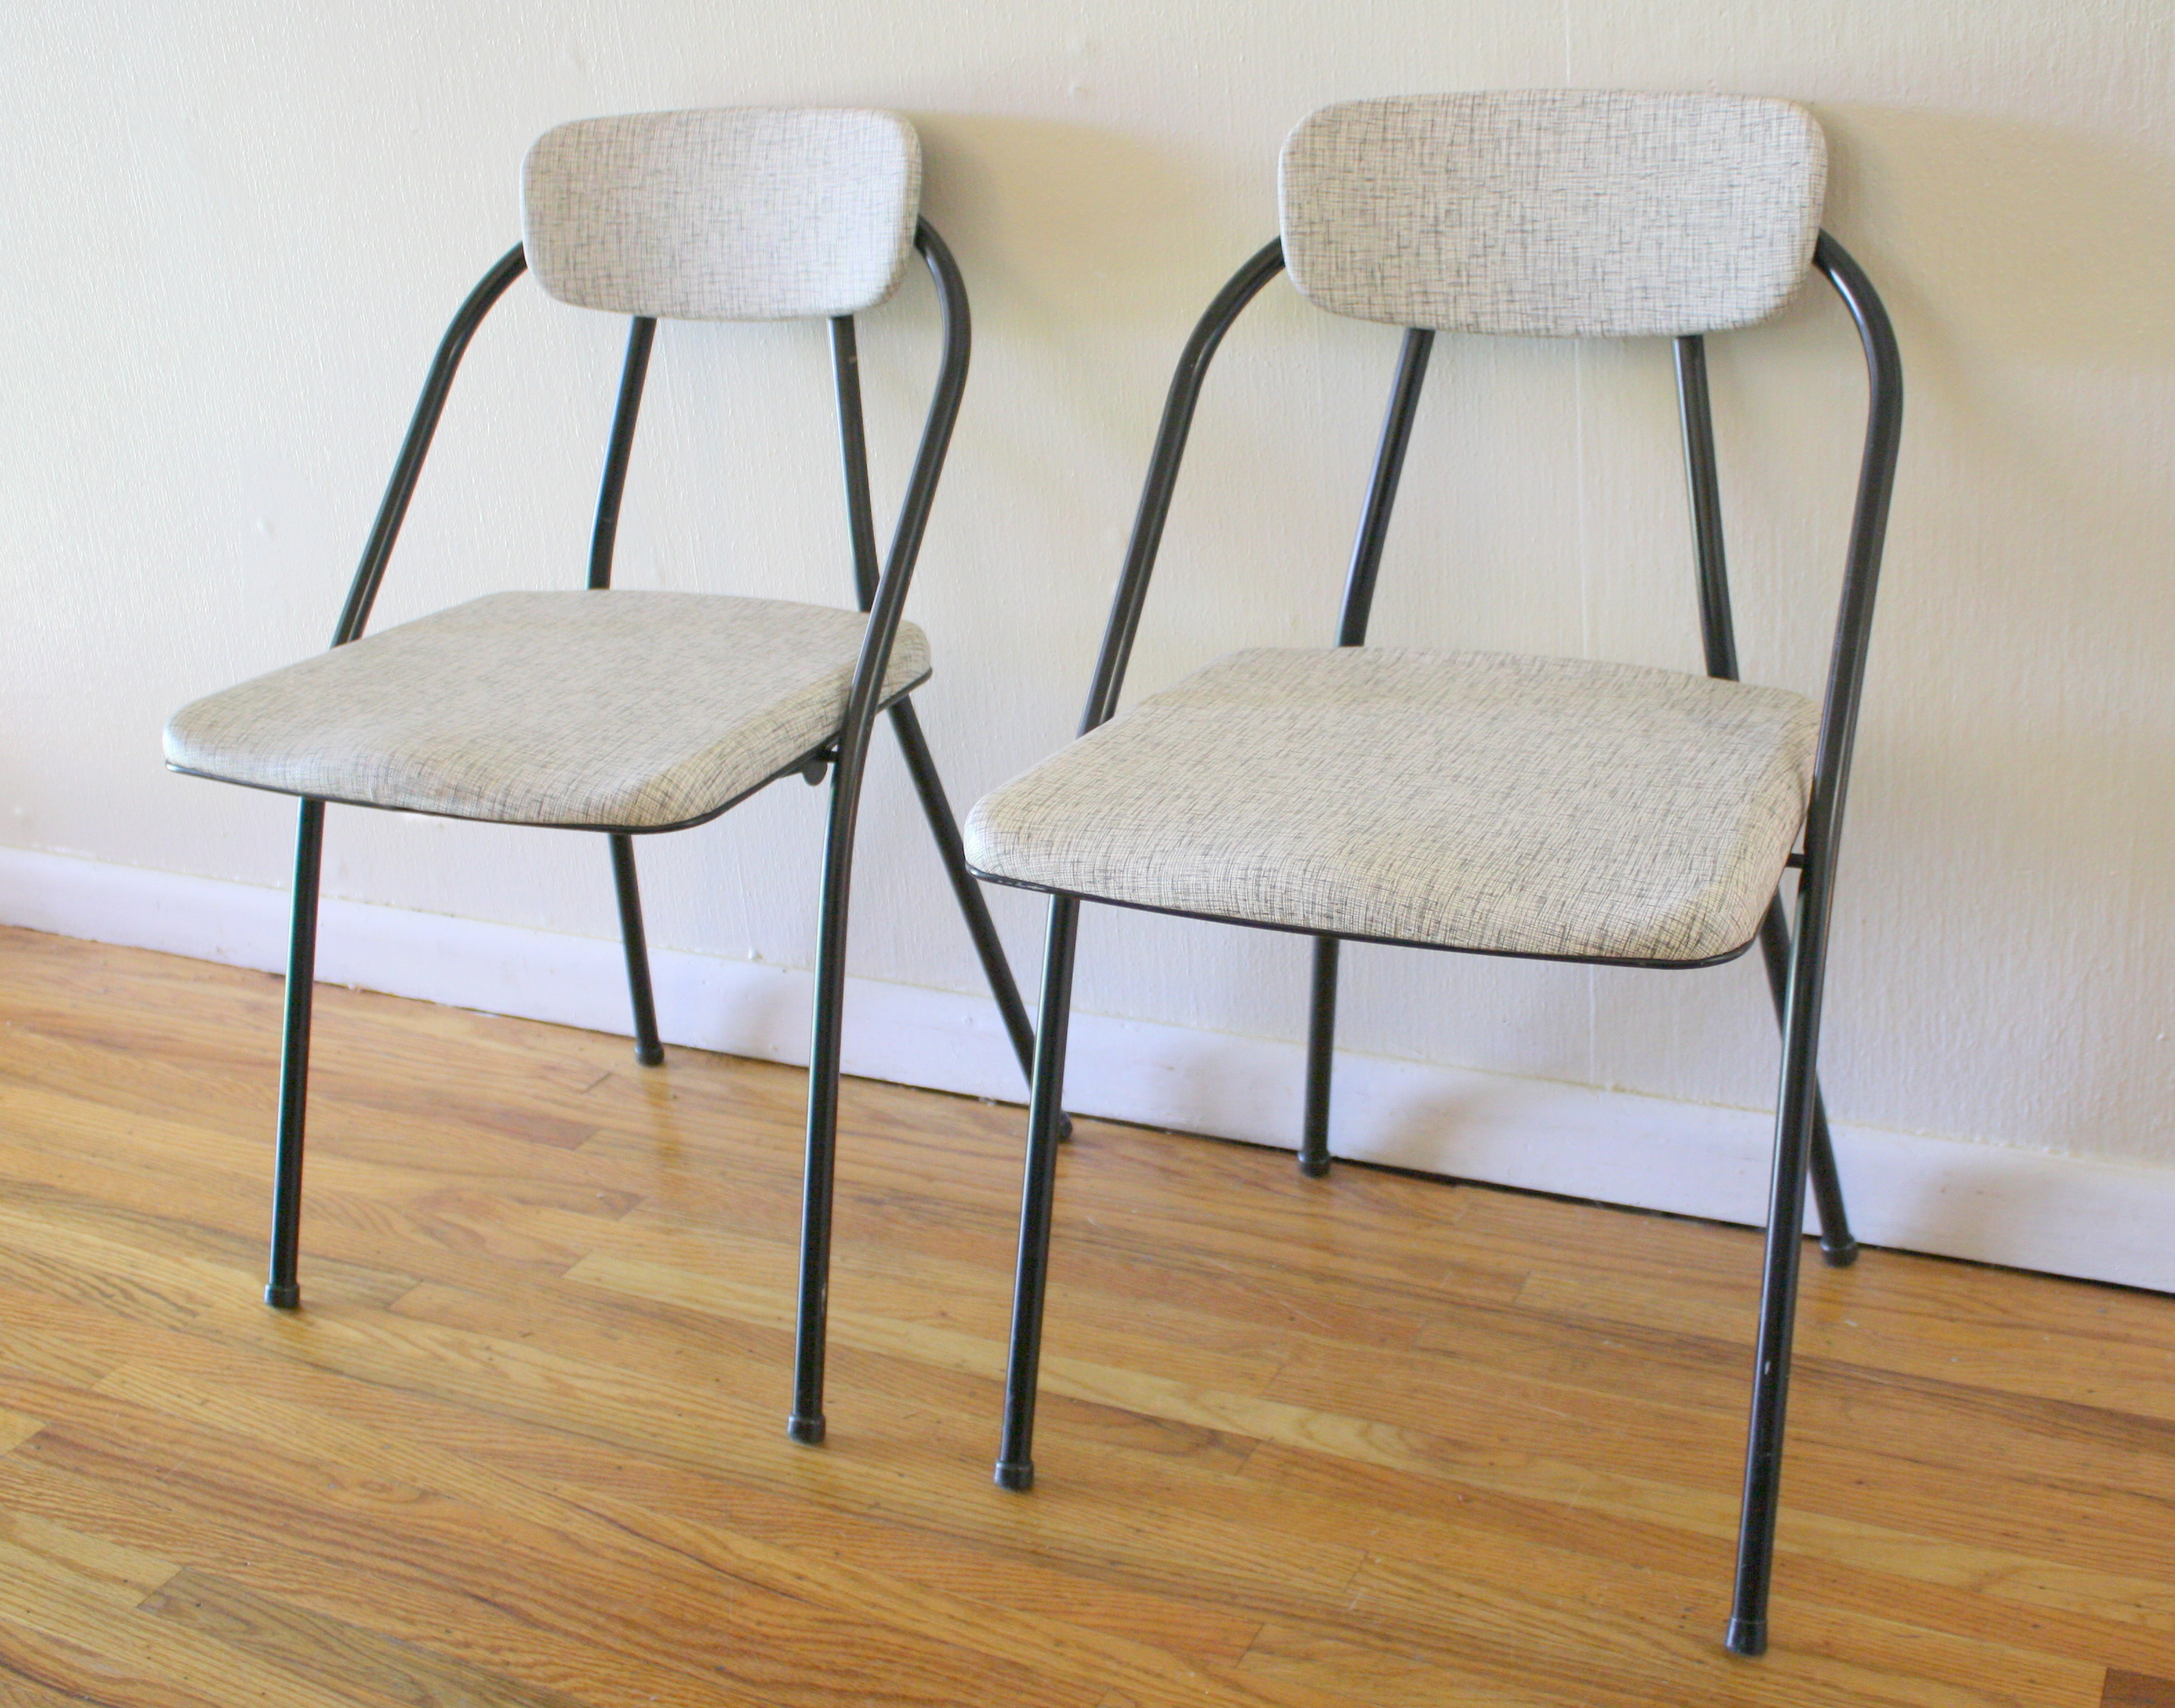 Modern Folding Chairs Mid Century Modern Vintage Folding Chair Pairs Picked